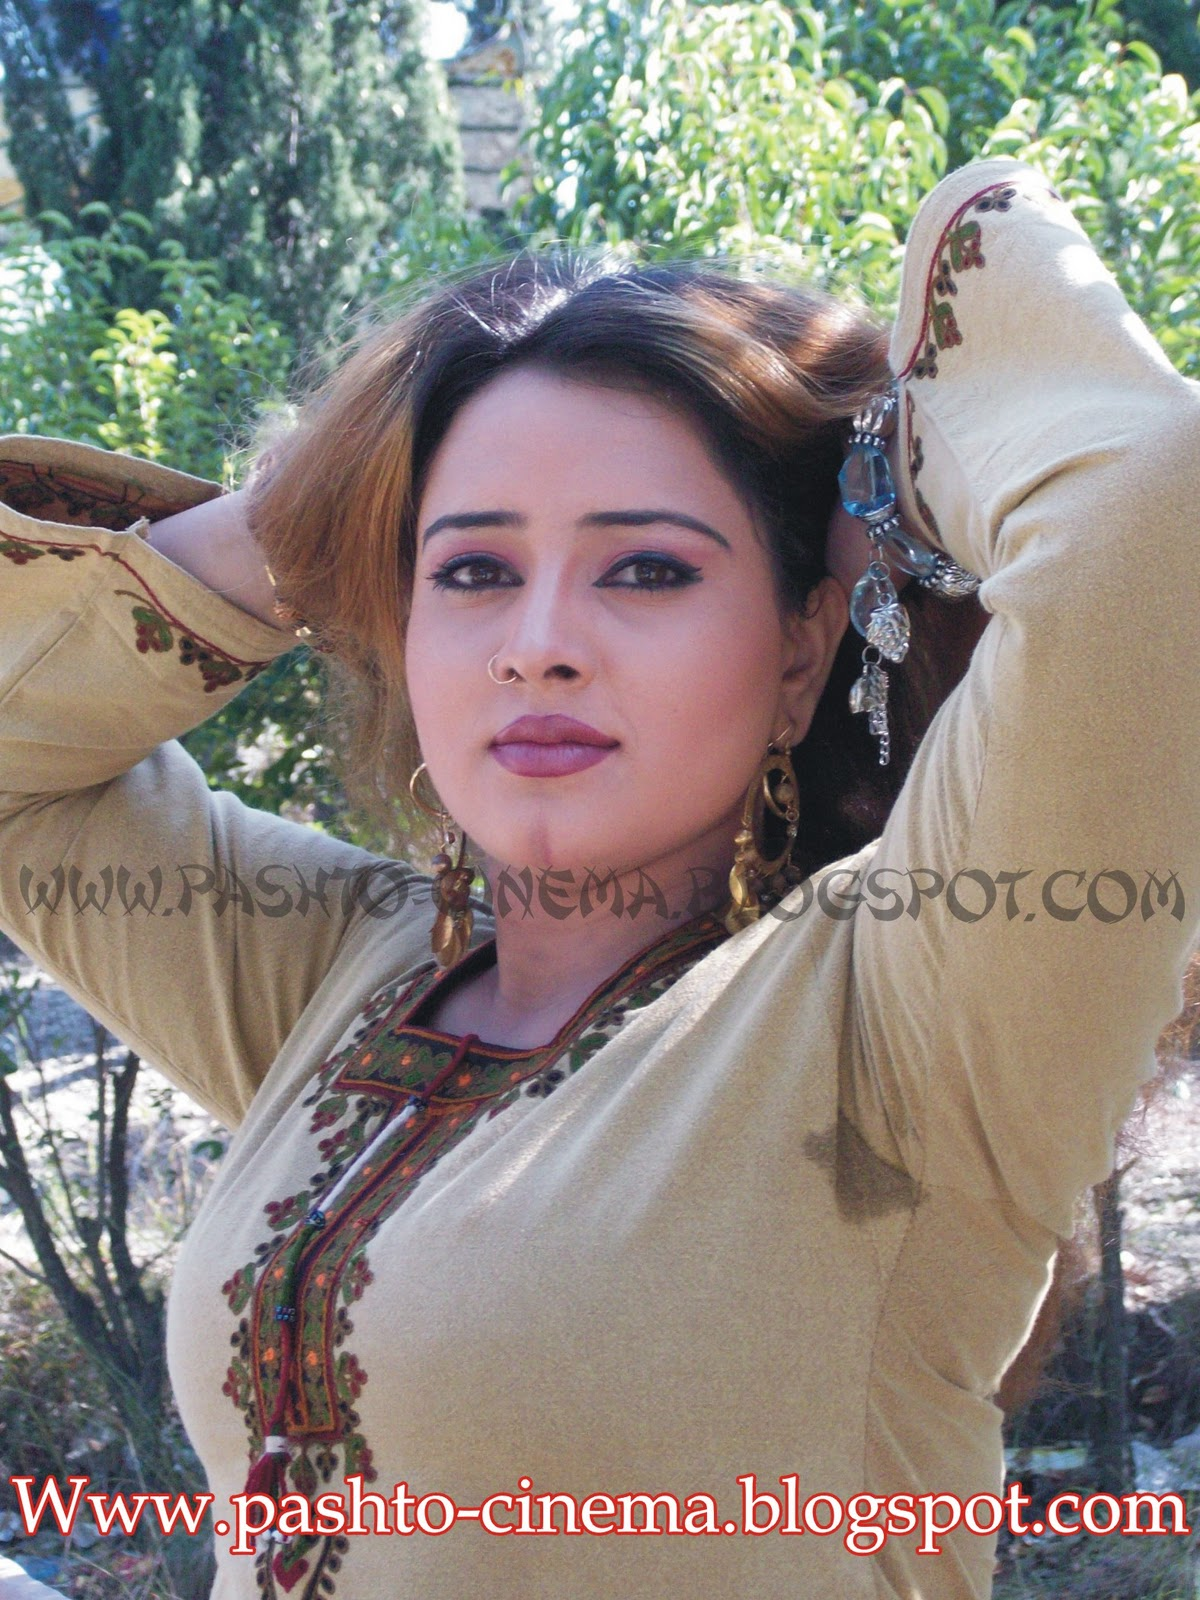 Hot Dancer, Model and CDs Darama (Telifilm) Actress Nadia Gul Photos